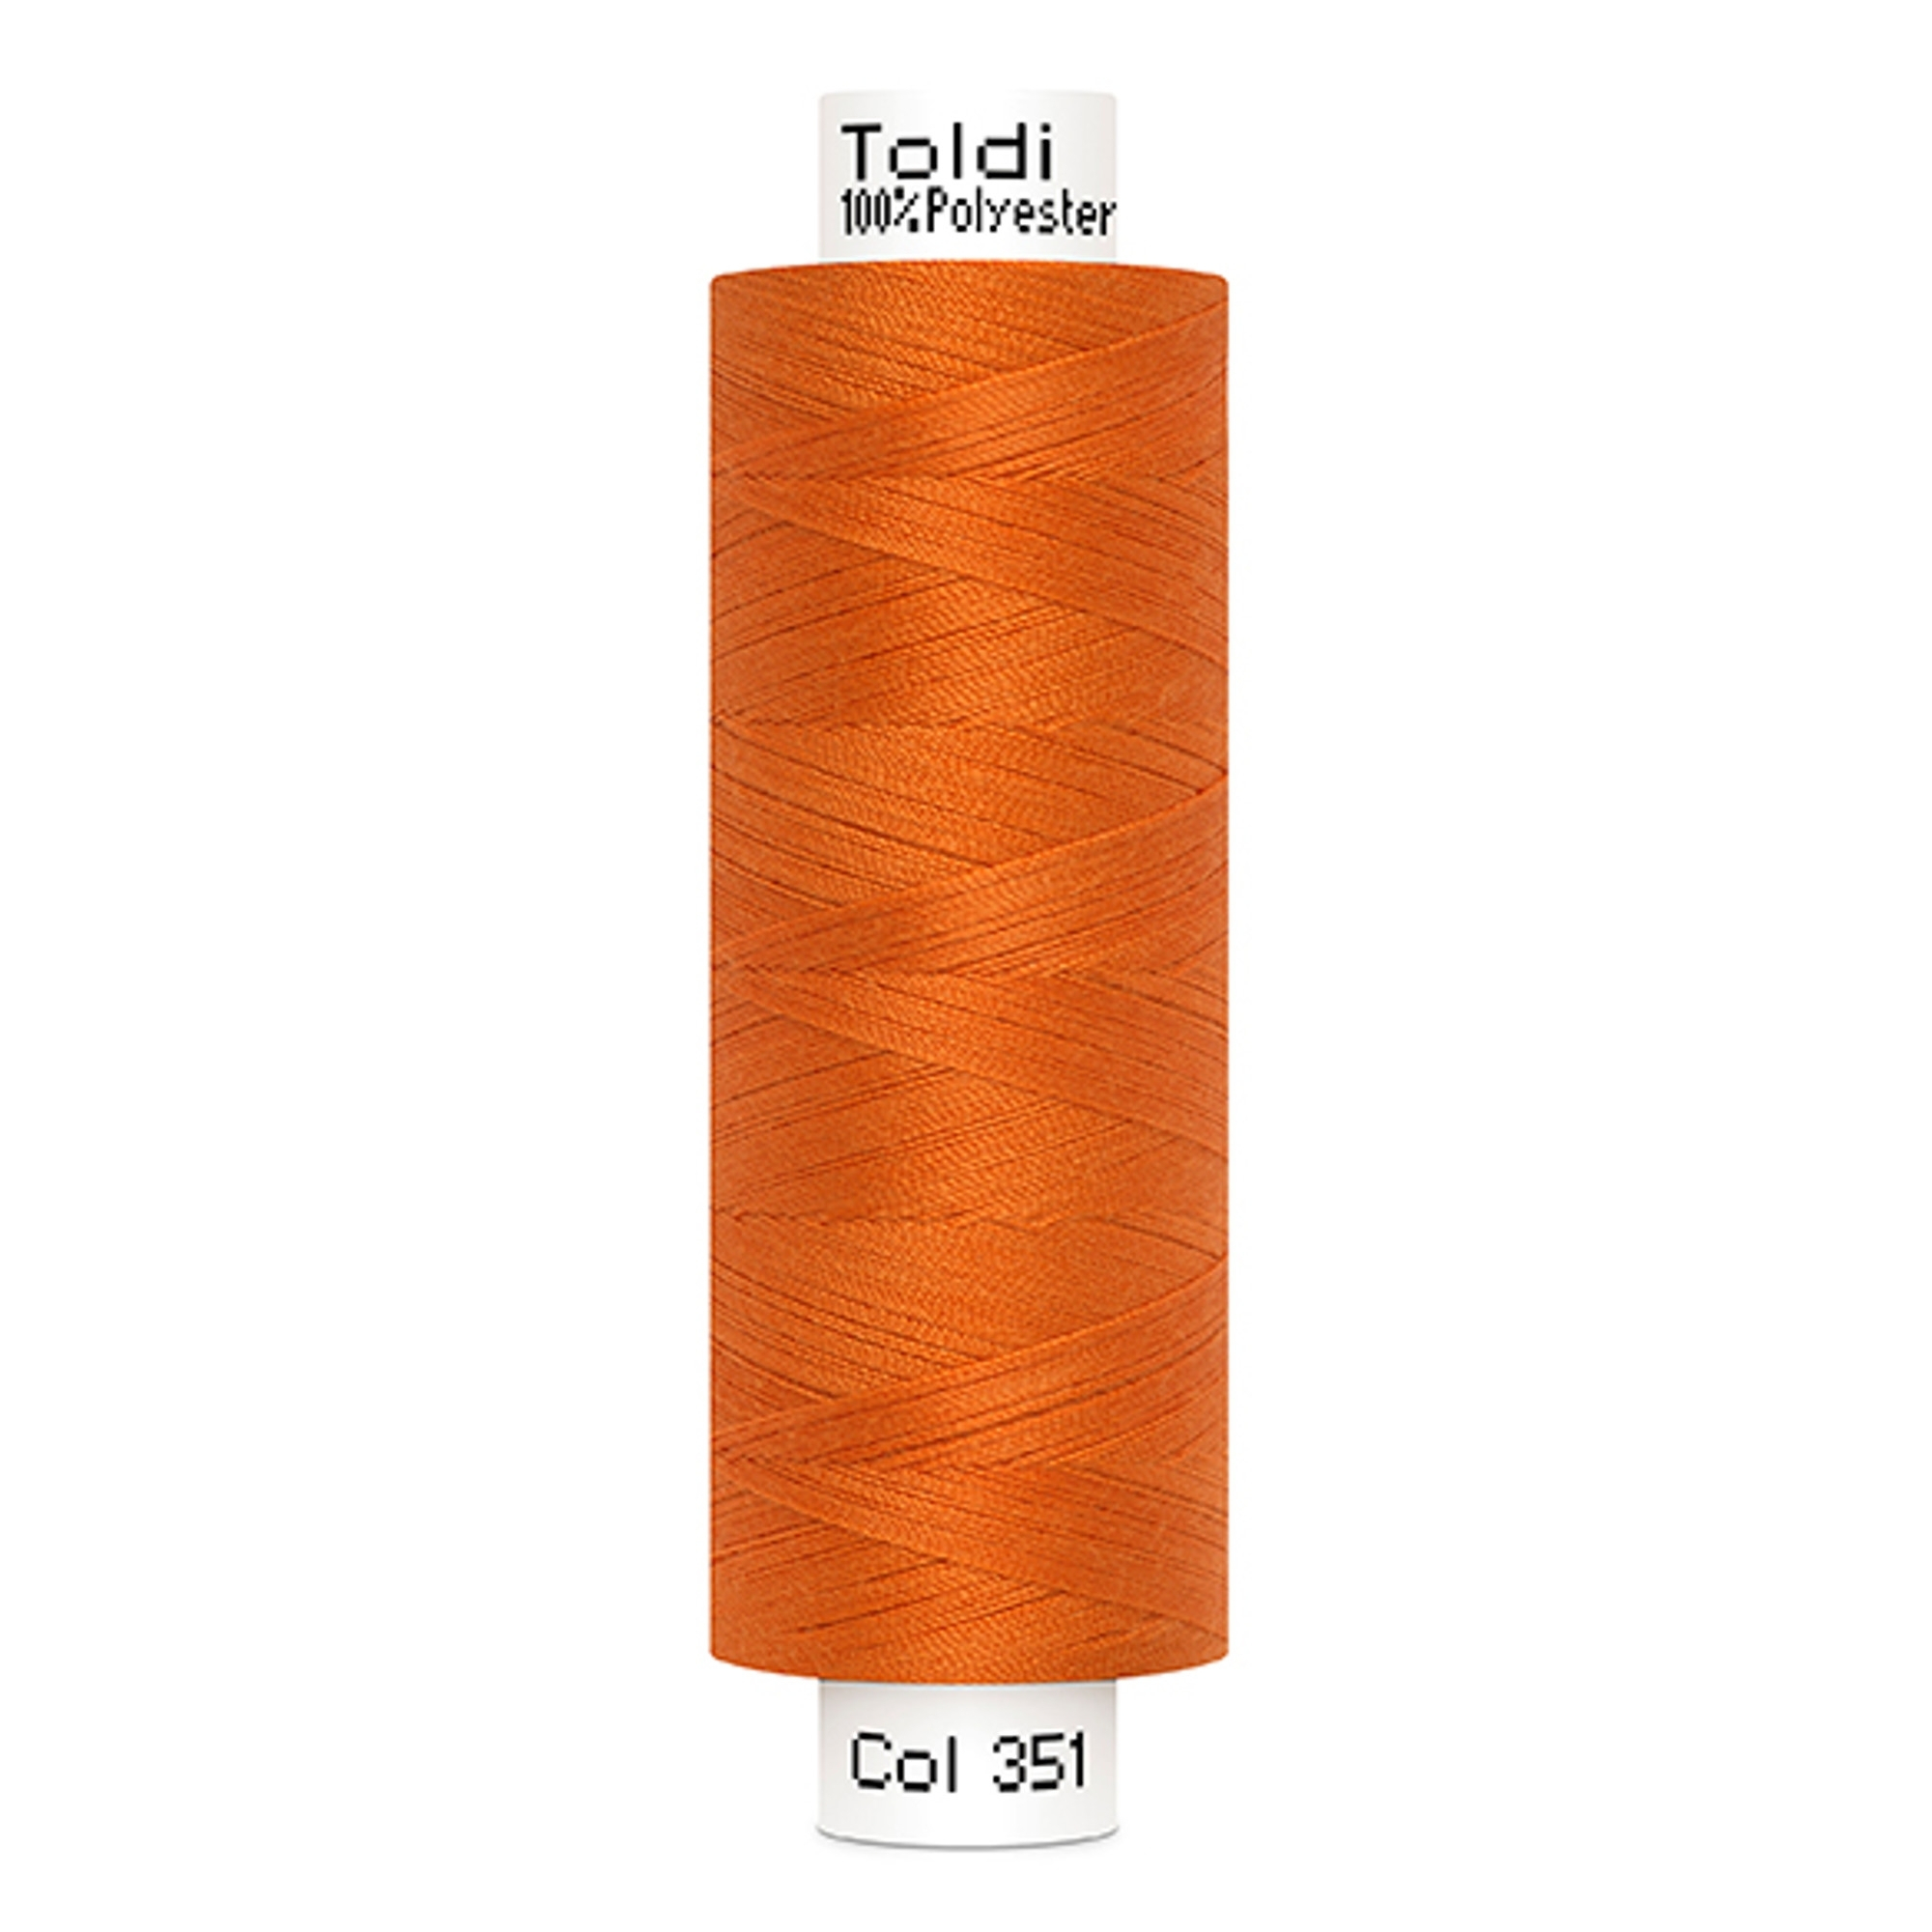 Gütermann Toldi Sewing Thread, 500 m orange | 707589-351 | orange